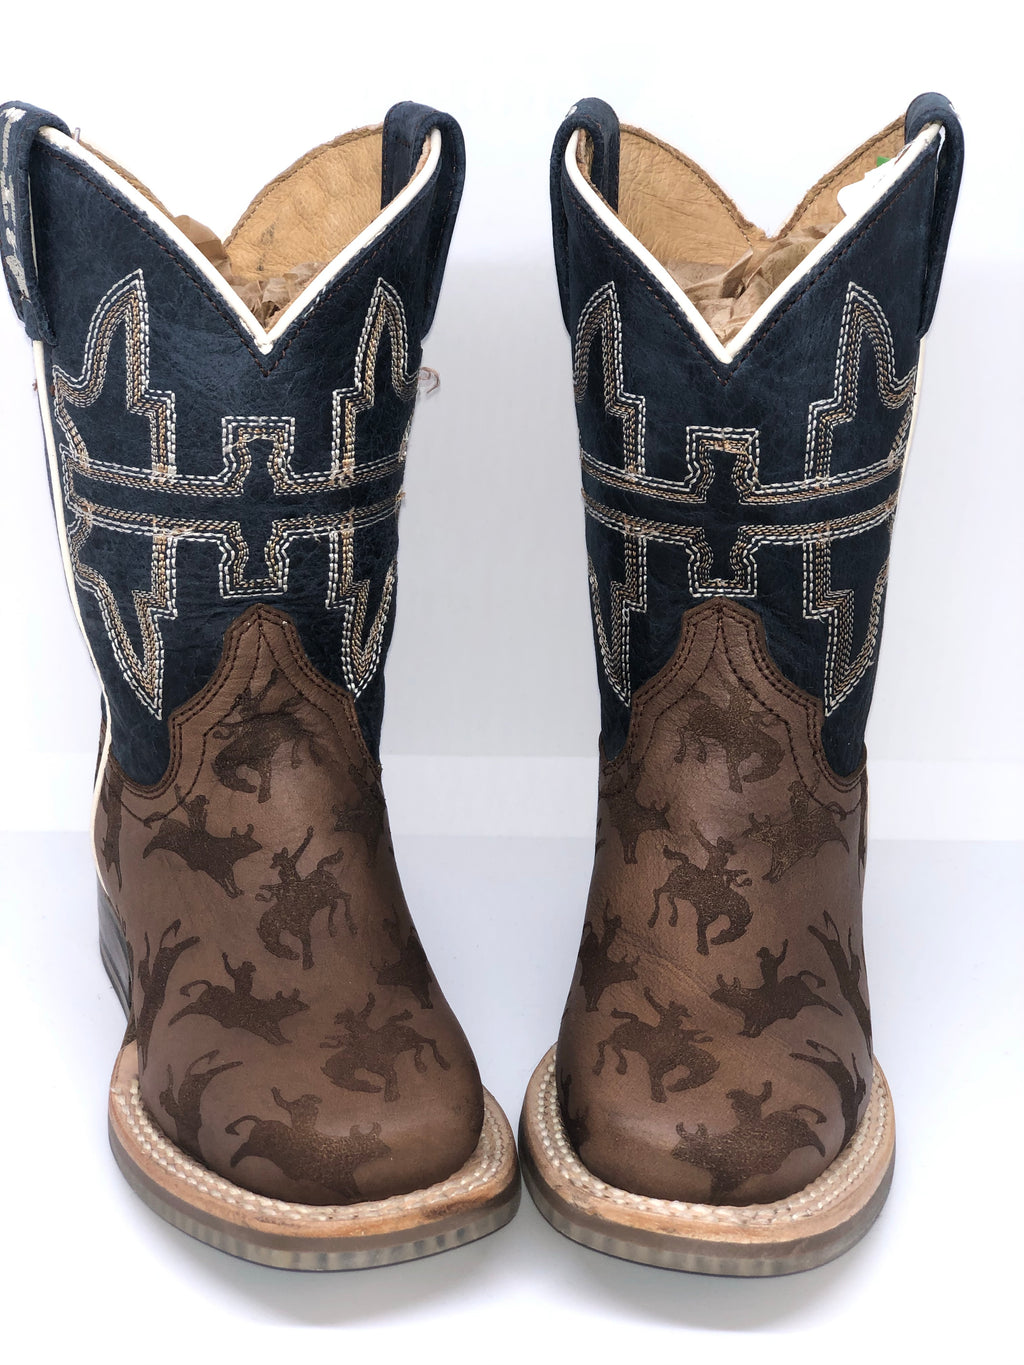 Tin Haul Kid's Rough Stock Boots w/Rodeo Poster Sole (0815)